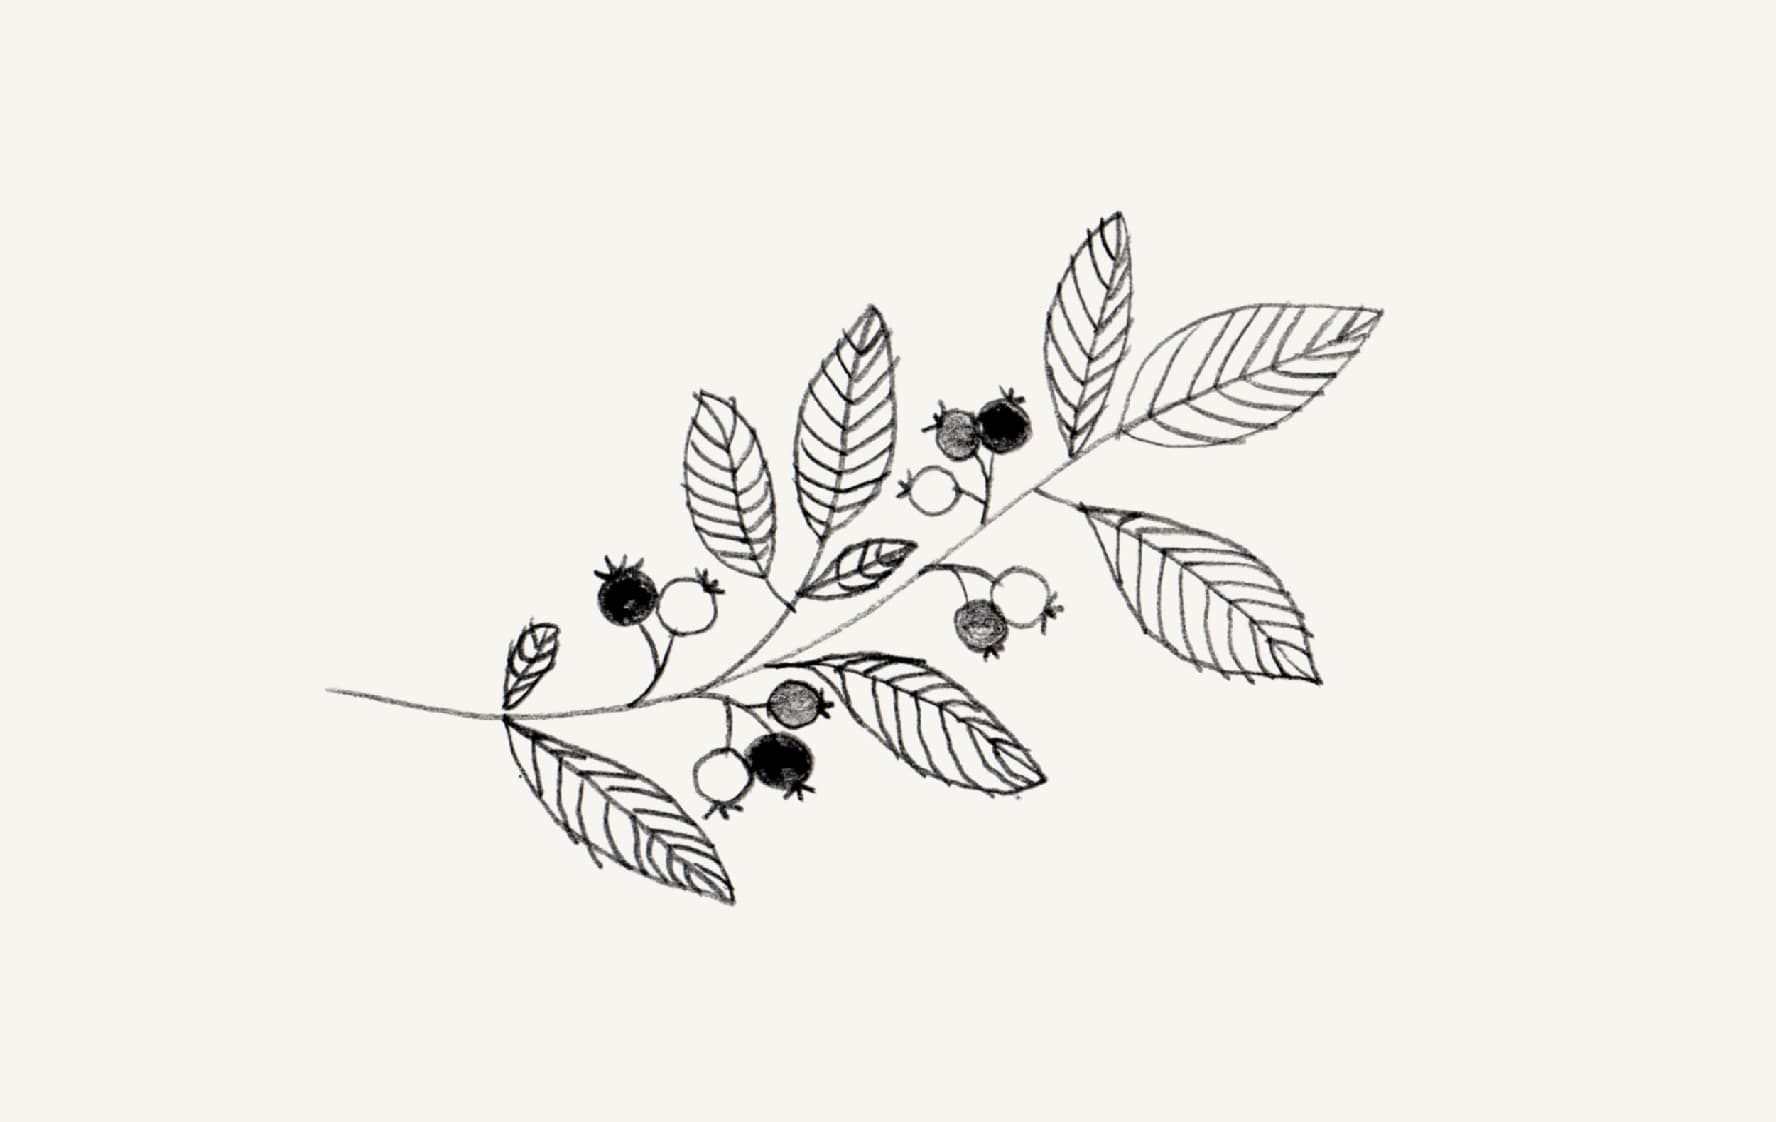 Beautiful ink drawing of some leaves n shit.